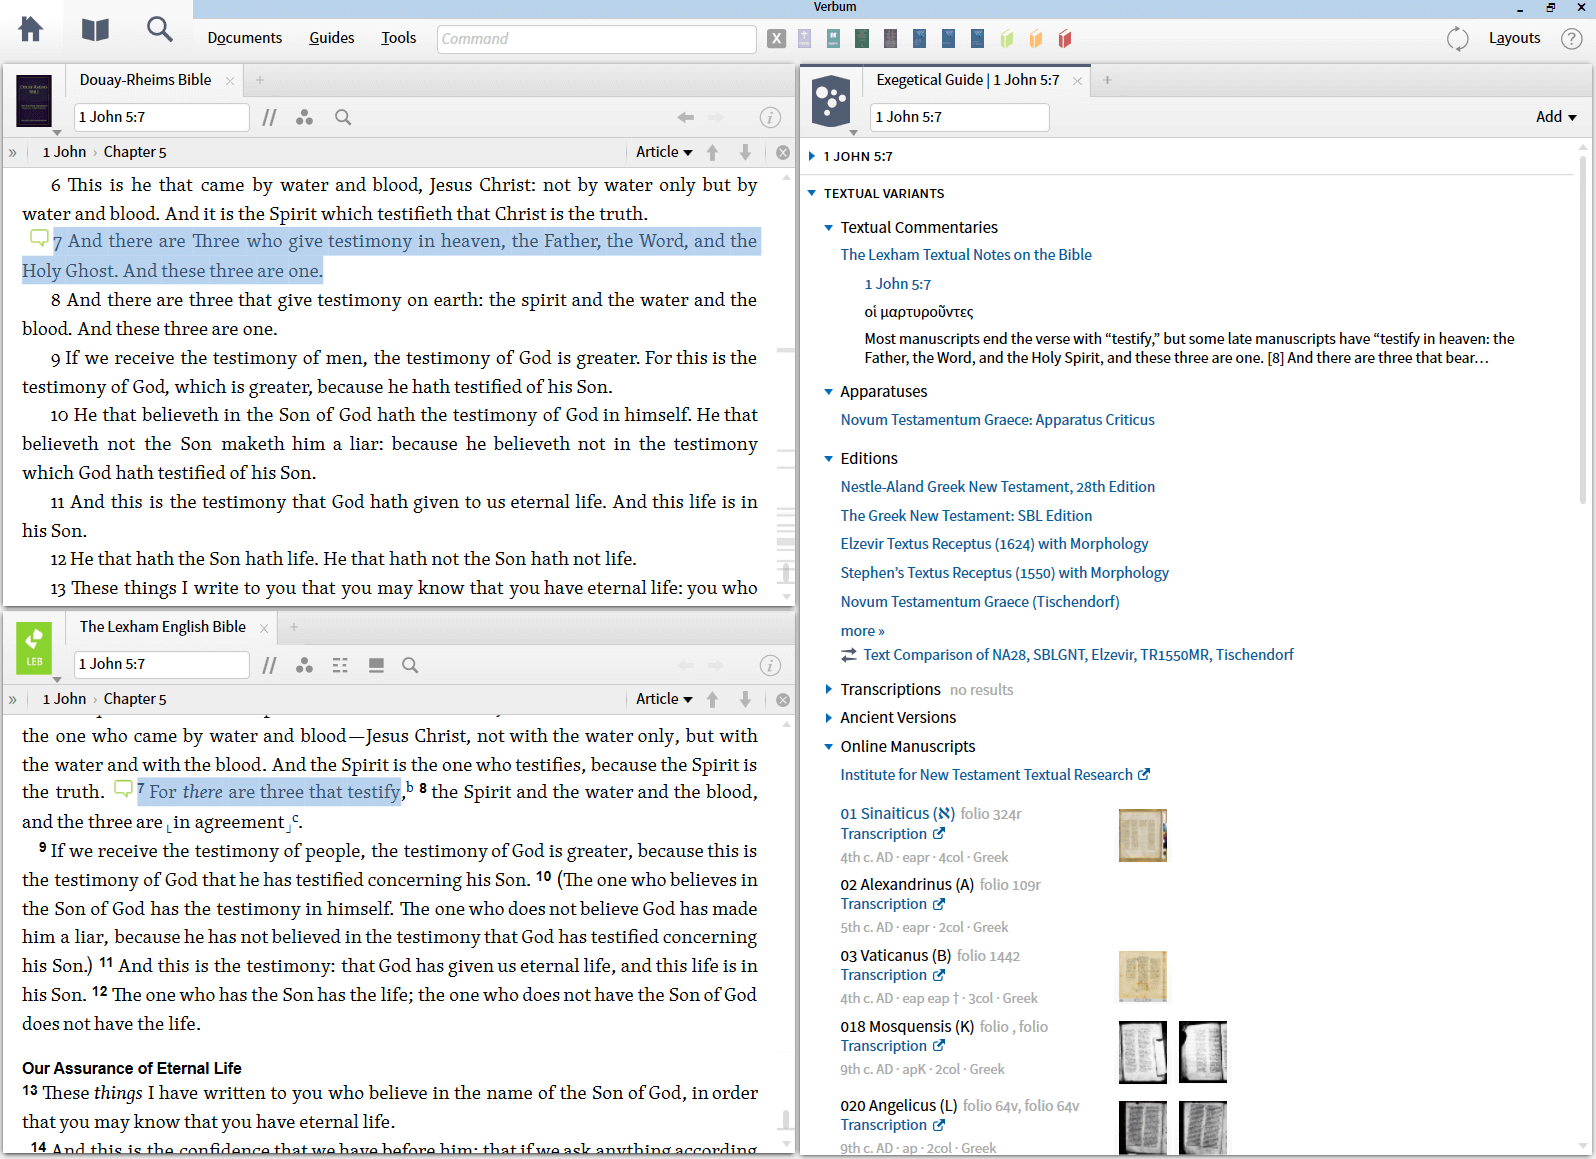 Understand textual variants for 1 John 5:7